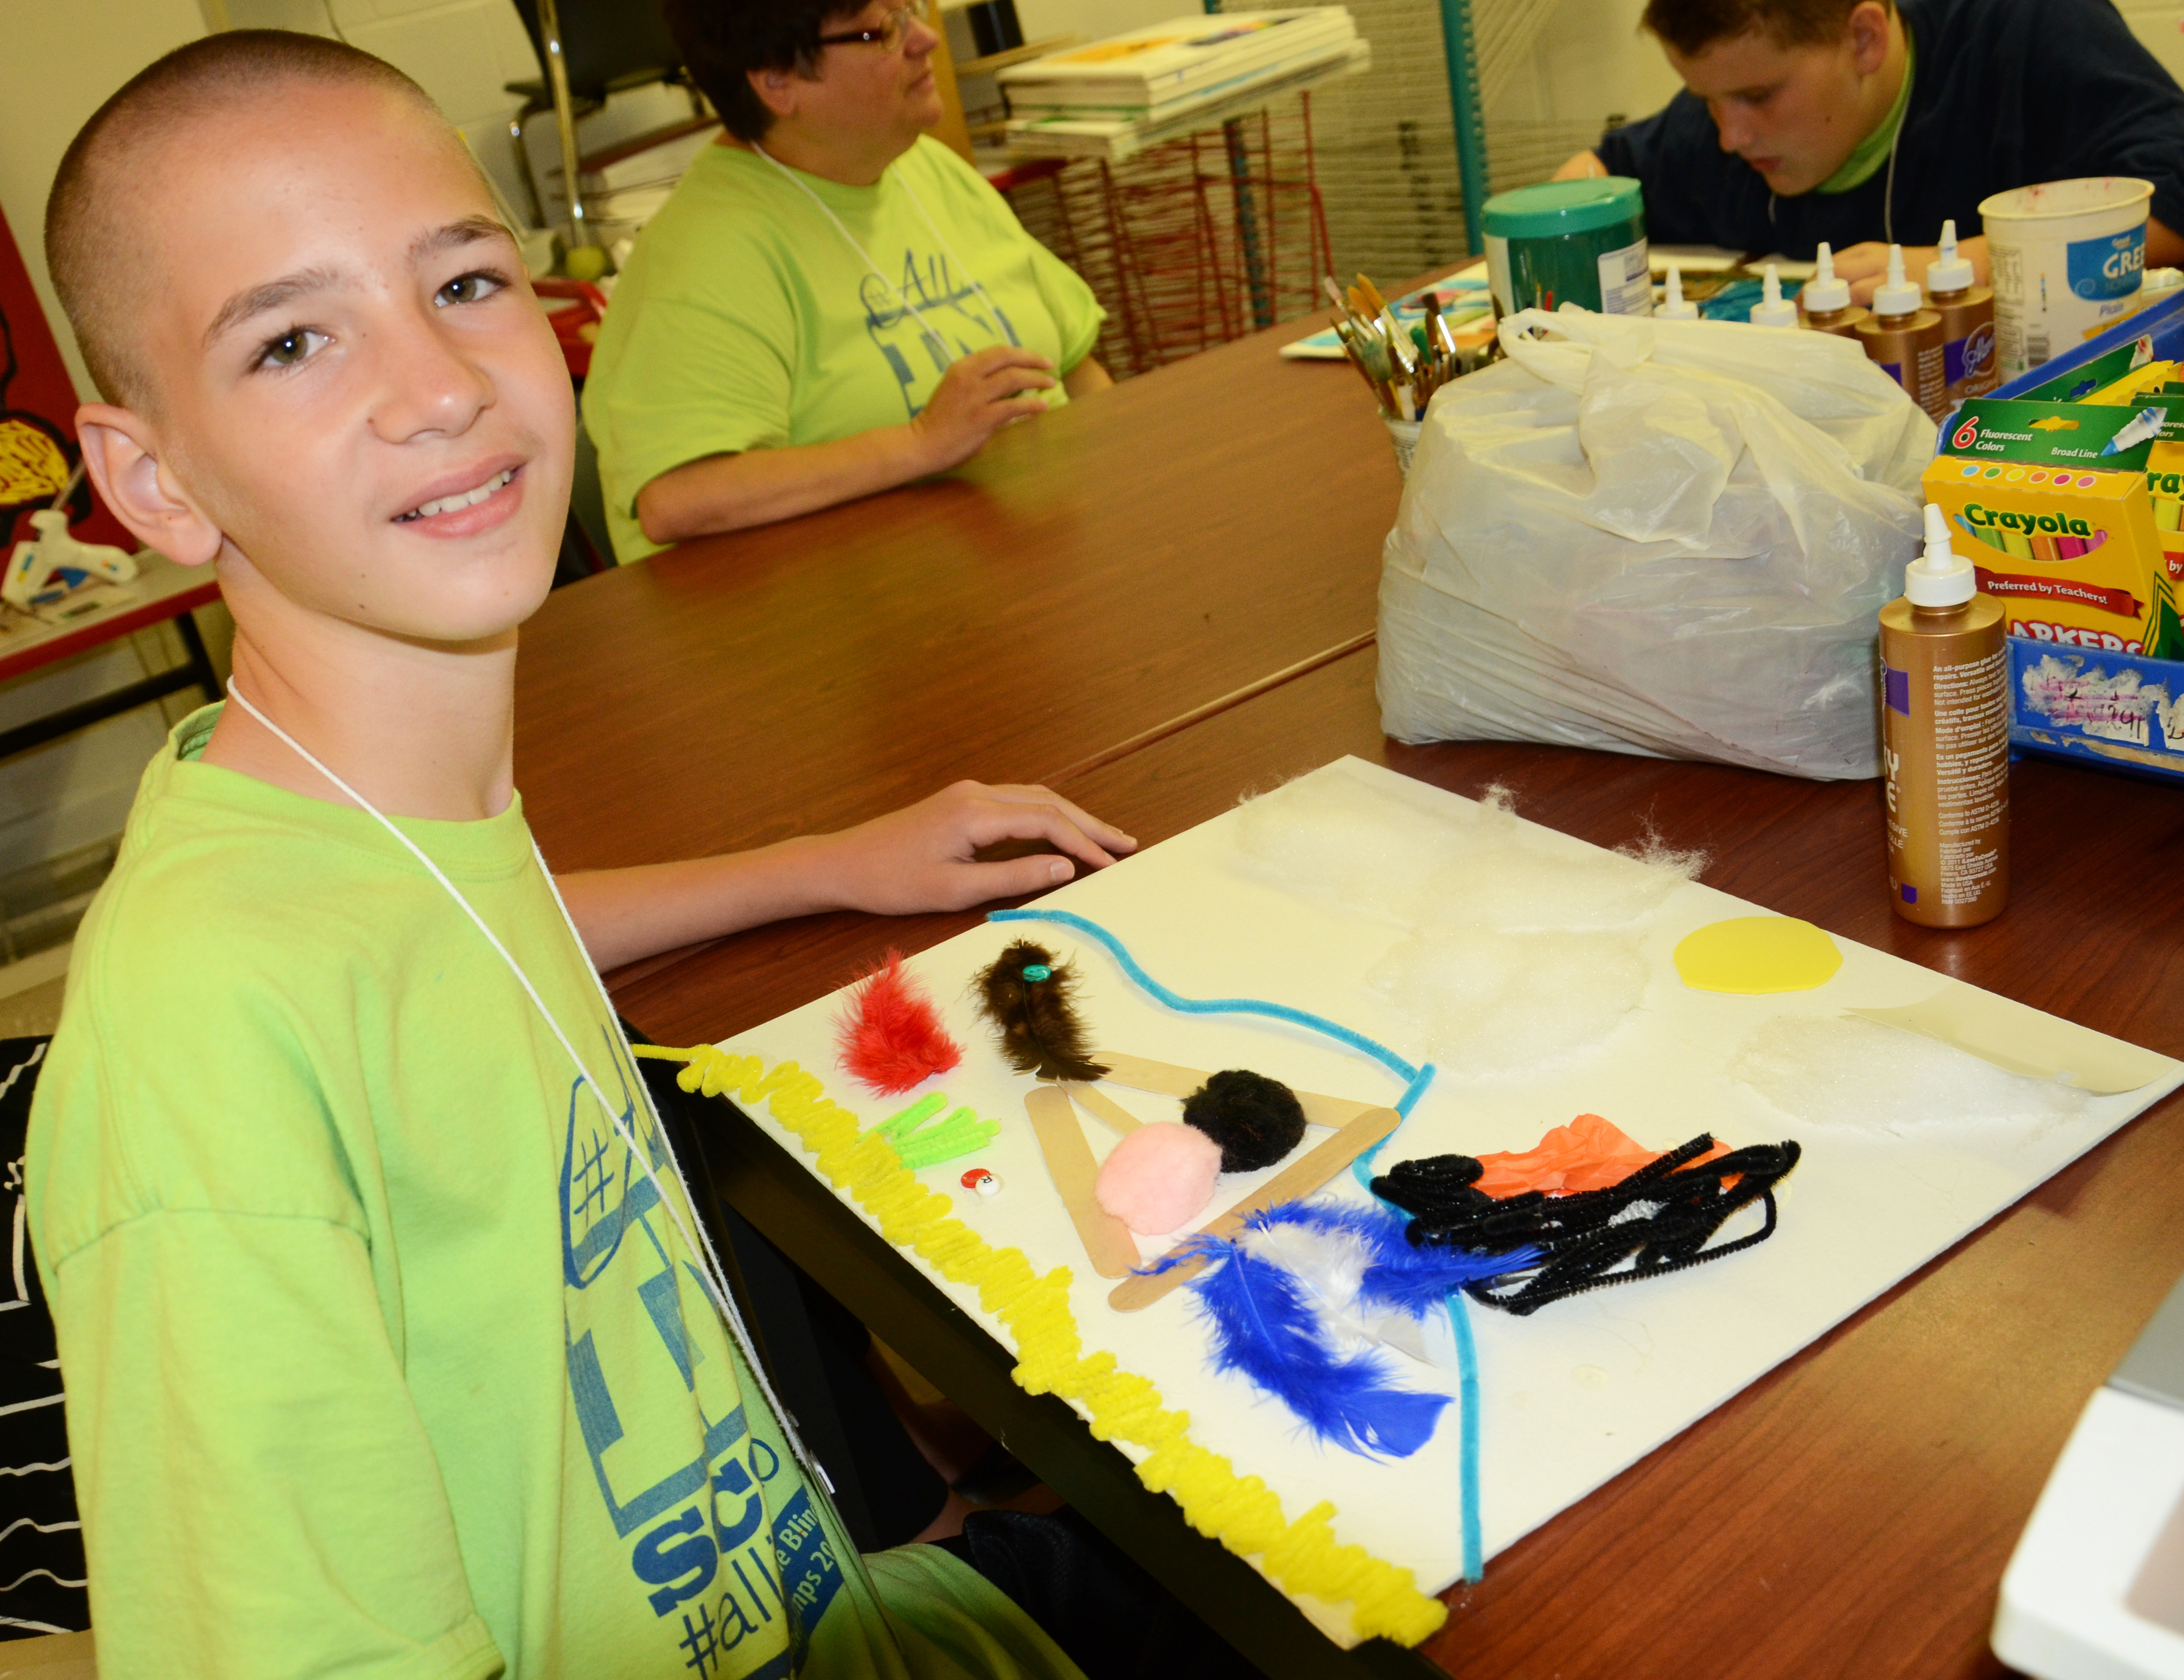 Campers used yarn, popsicle sticks, and a variety of materials to make touchable artwork.